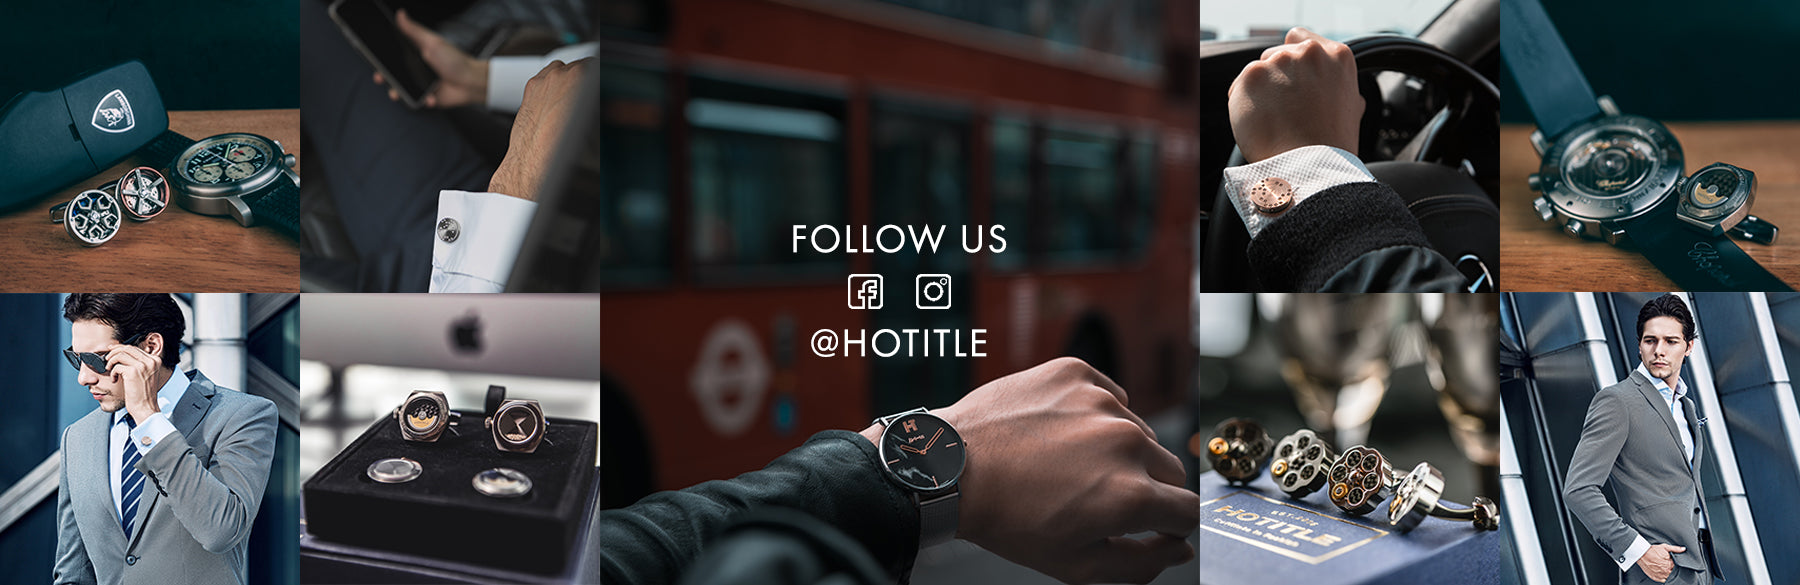 Follow HOTITLE on social media